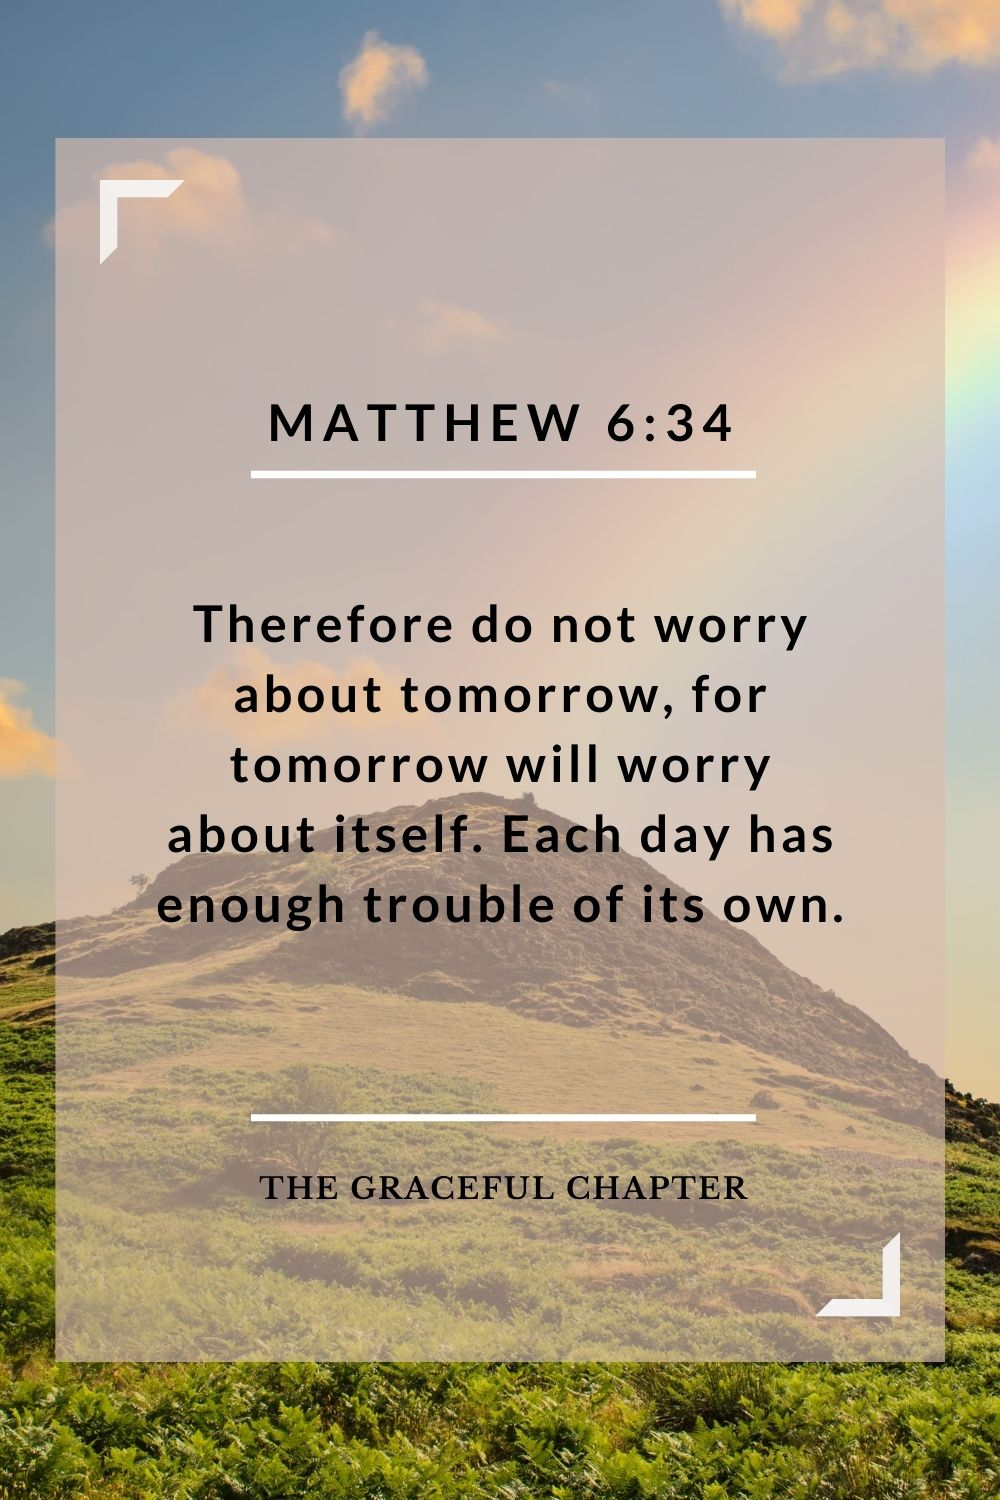 Therefore do not worry about tomorrow, for tomorrow will worry about itself. Each day has enough trouble of its own. Matthew 6:34